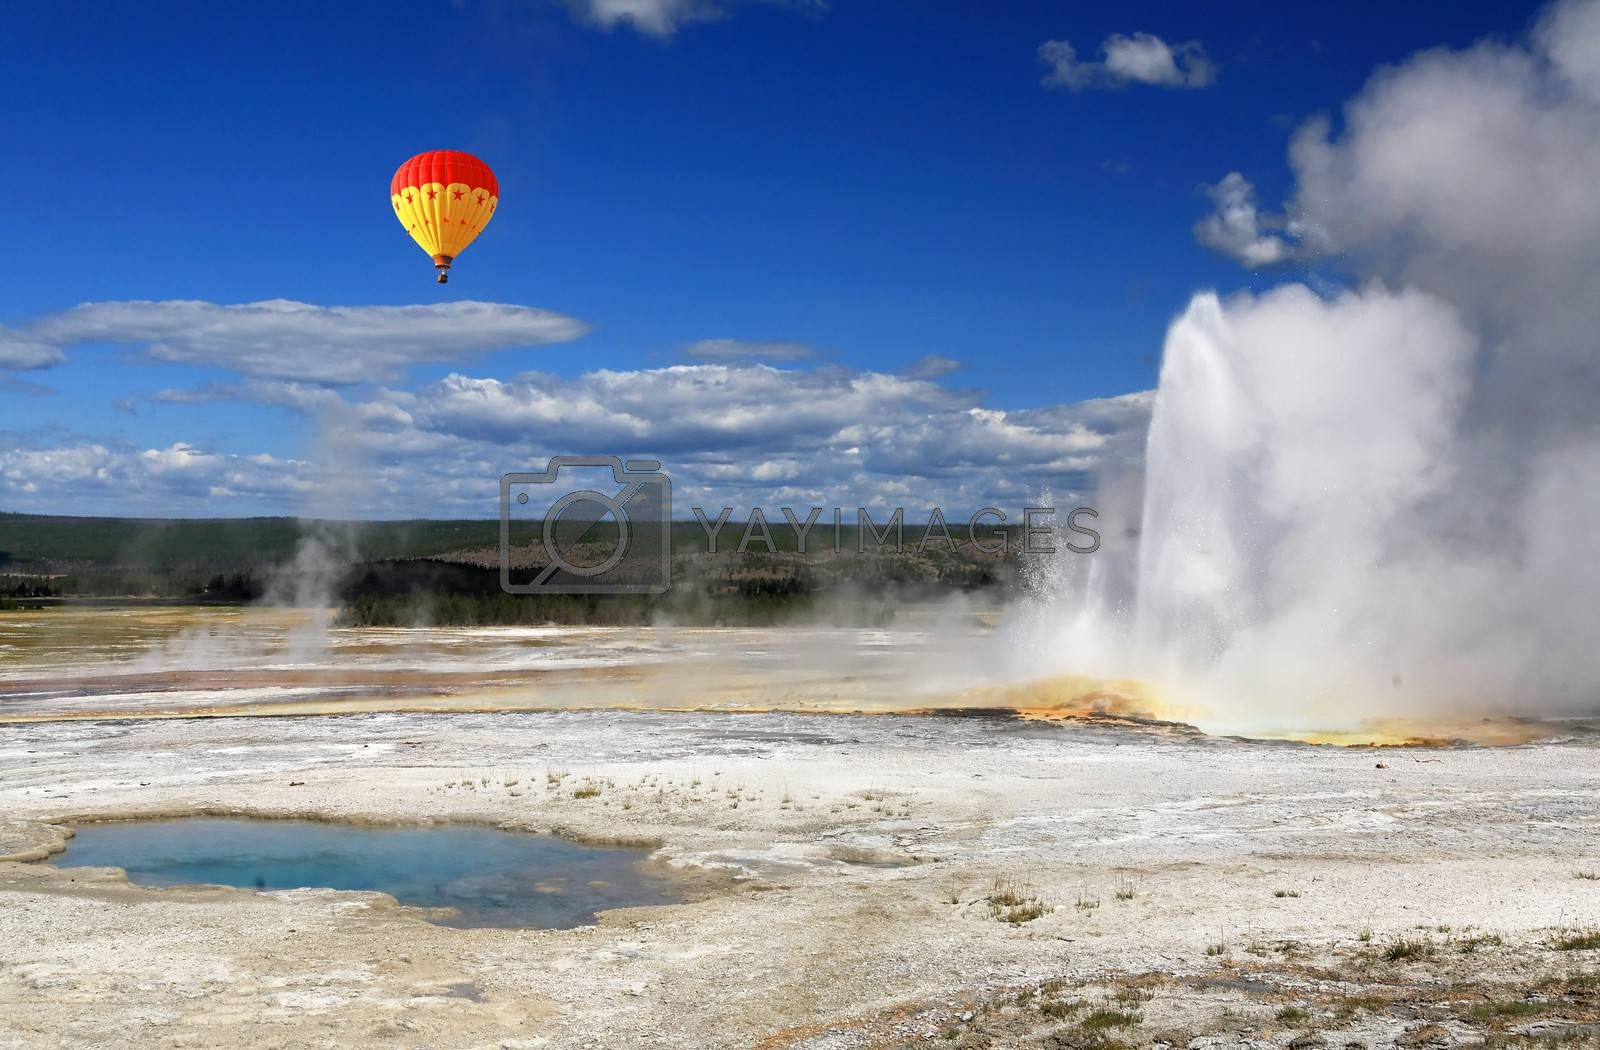 The scenery of Lower Geyser Basin in Yellowstone National Park